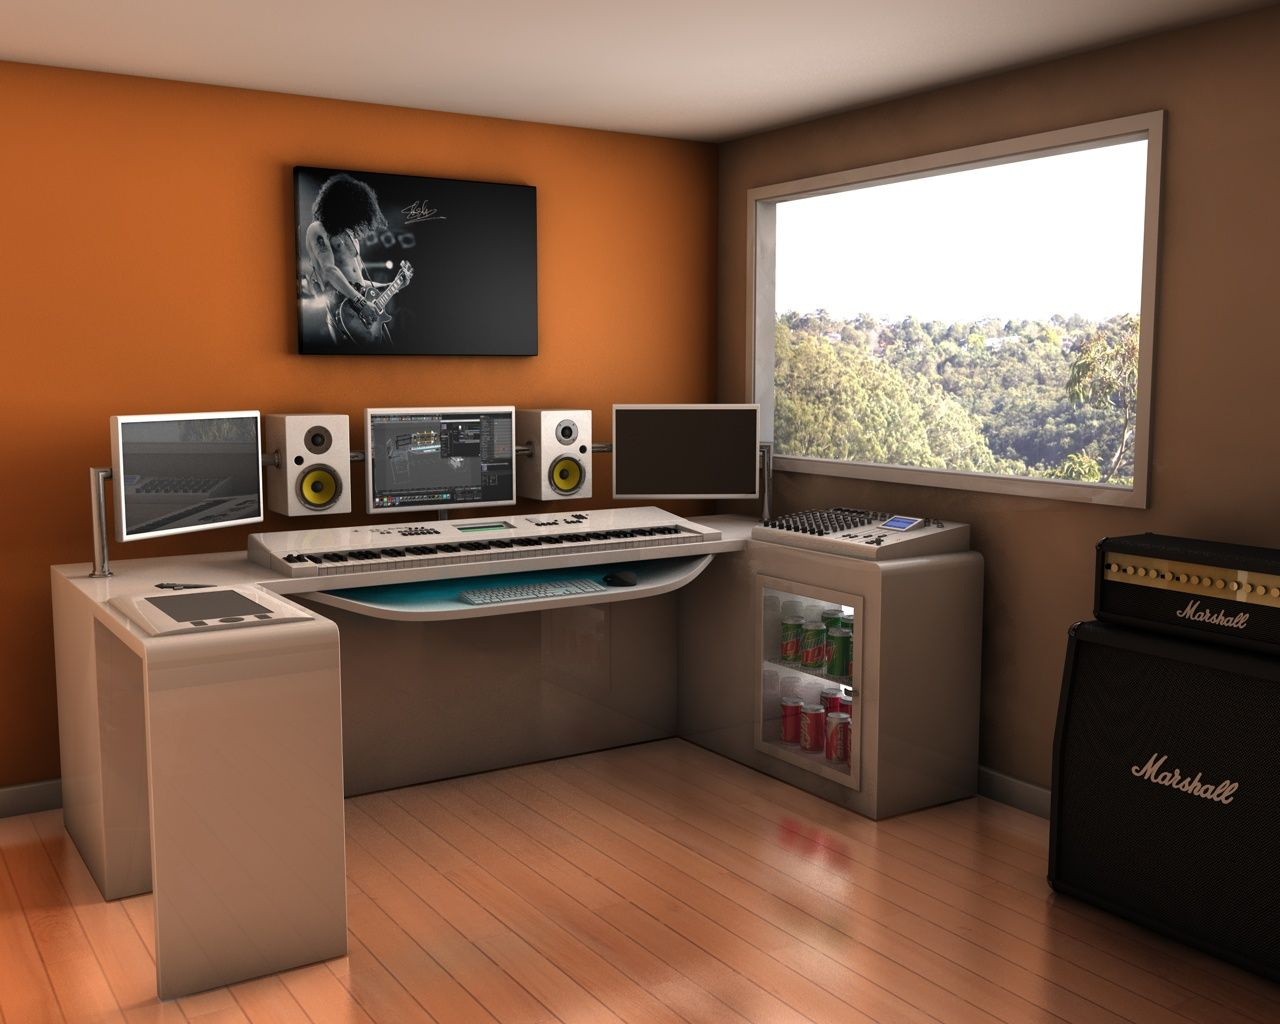 Admirable 17 Best Ideas About Music Studio Room On Pinterest Recording Largest Home Design Picture Inspirations Pitcheantrous